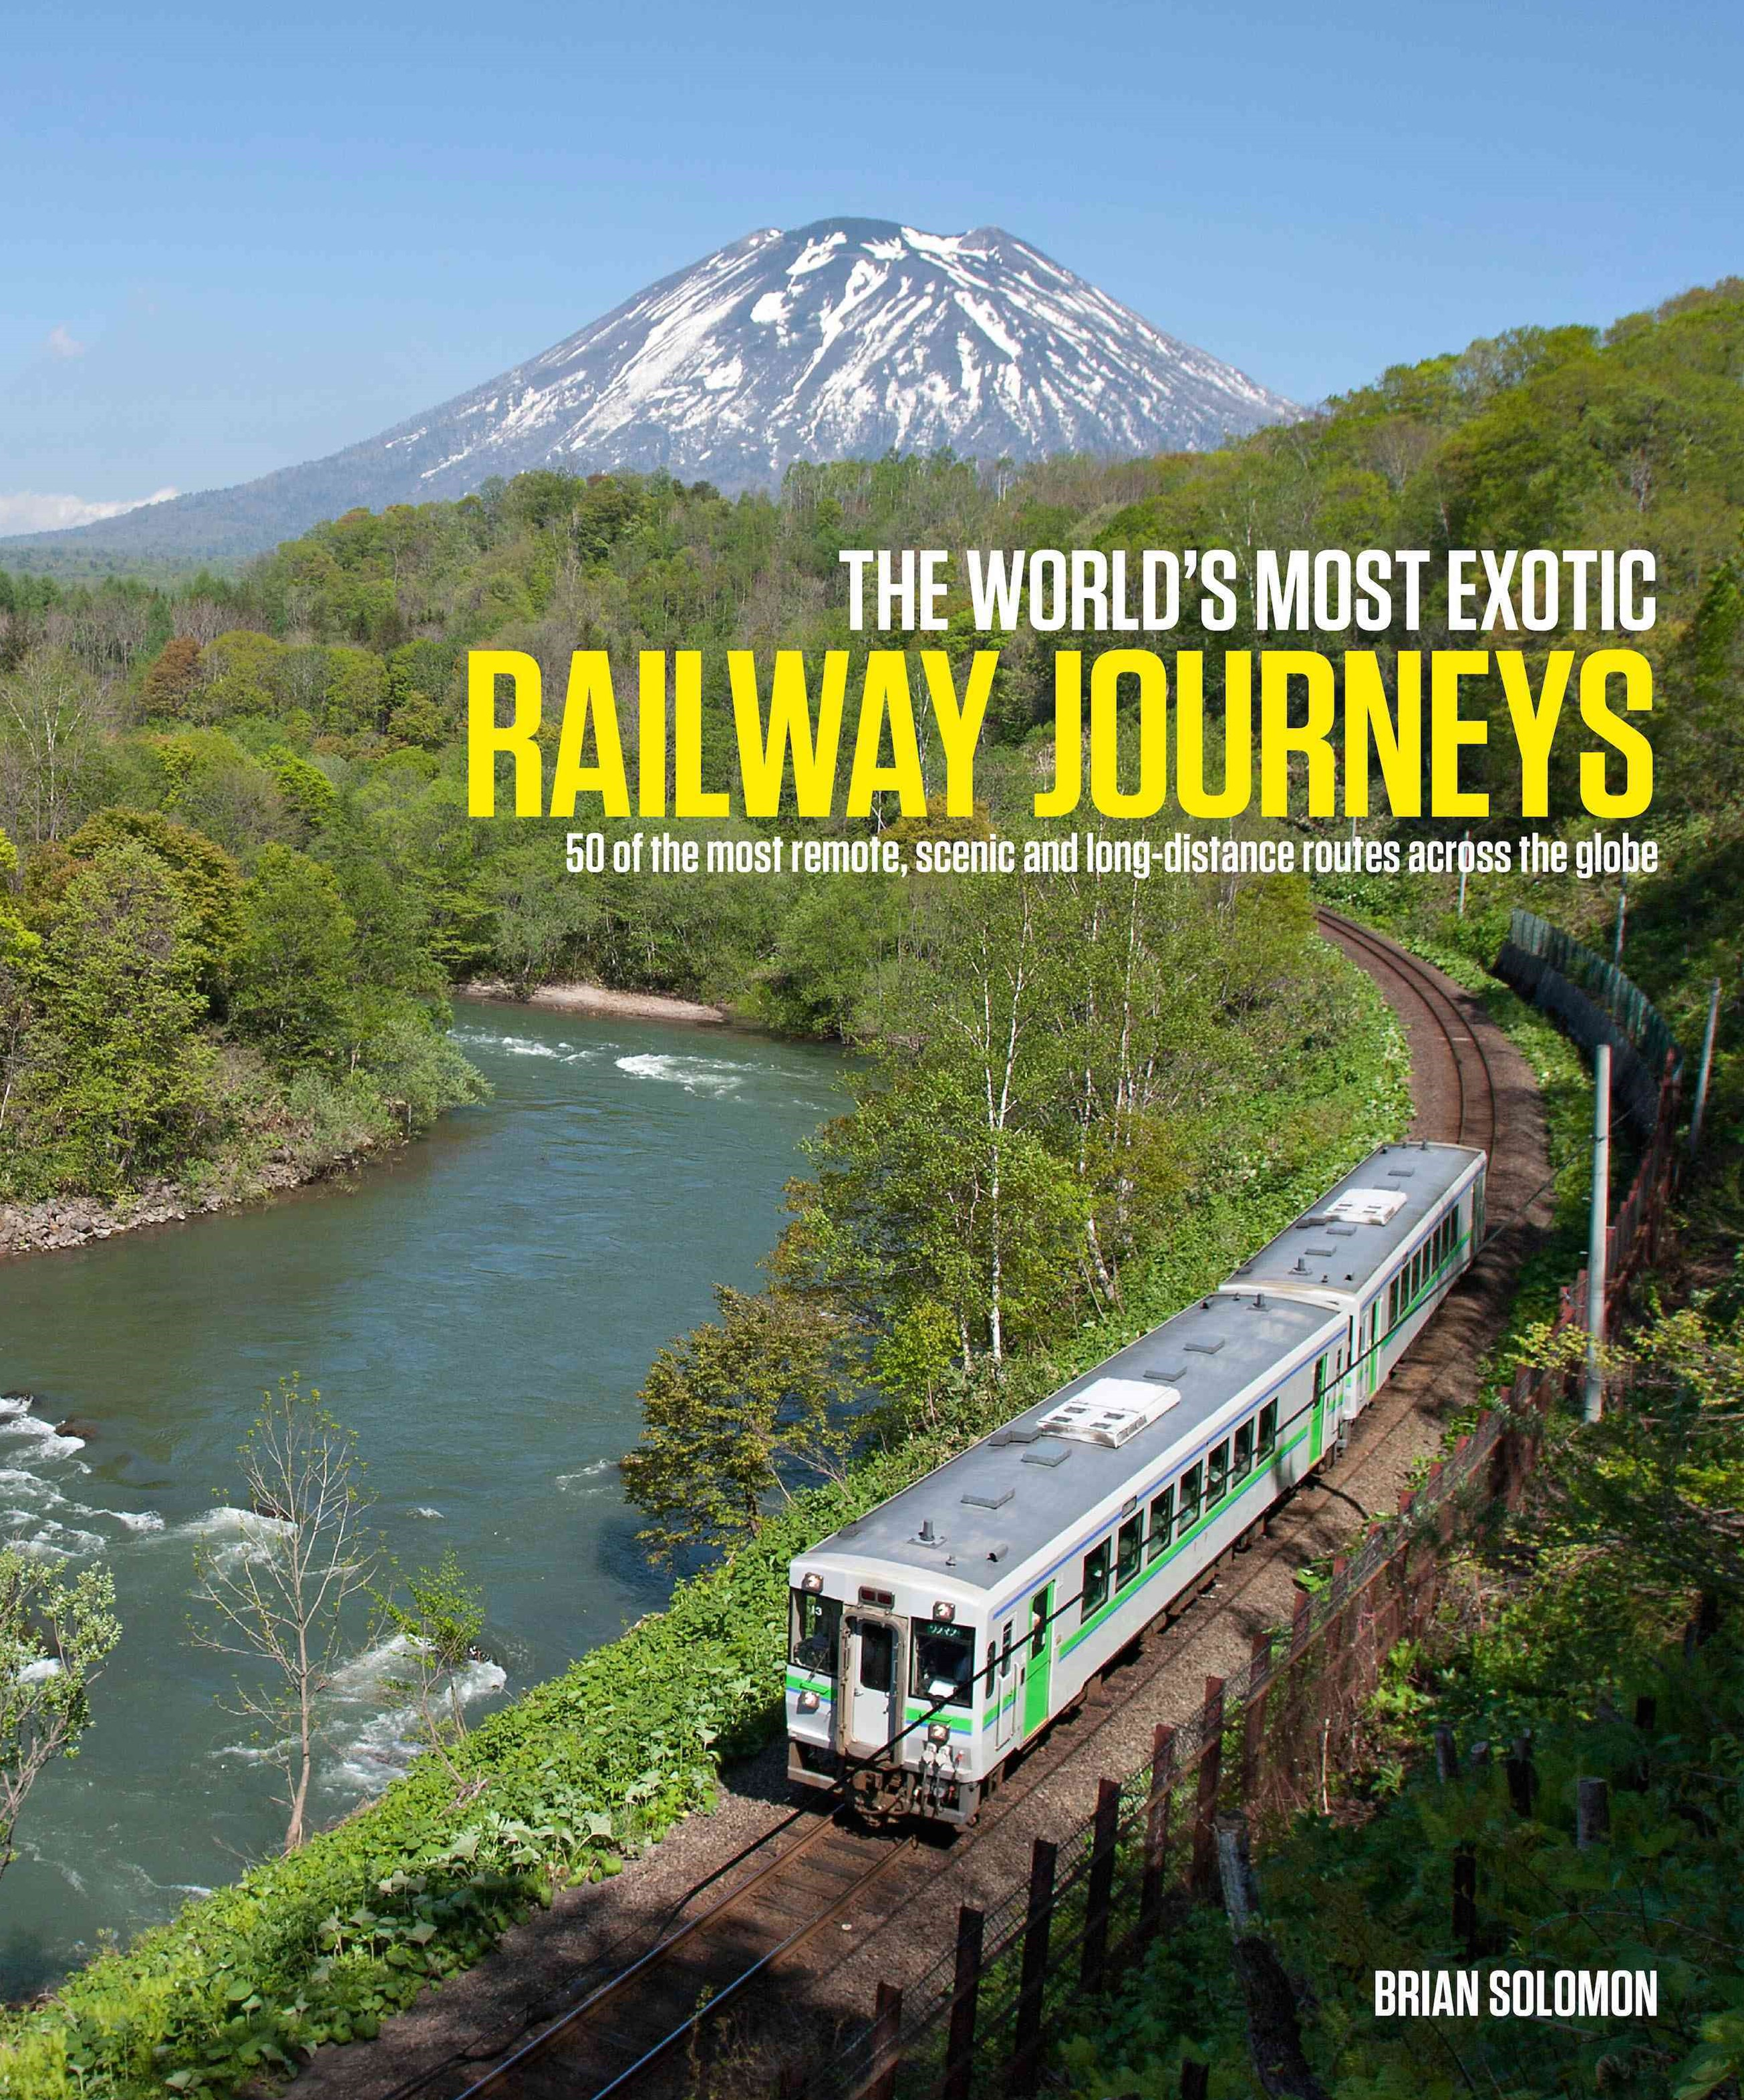 World's Most Exotic Railway Journeys H/C